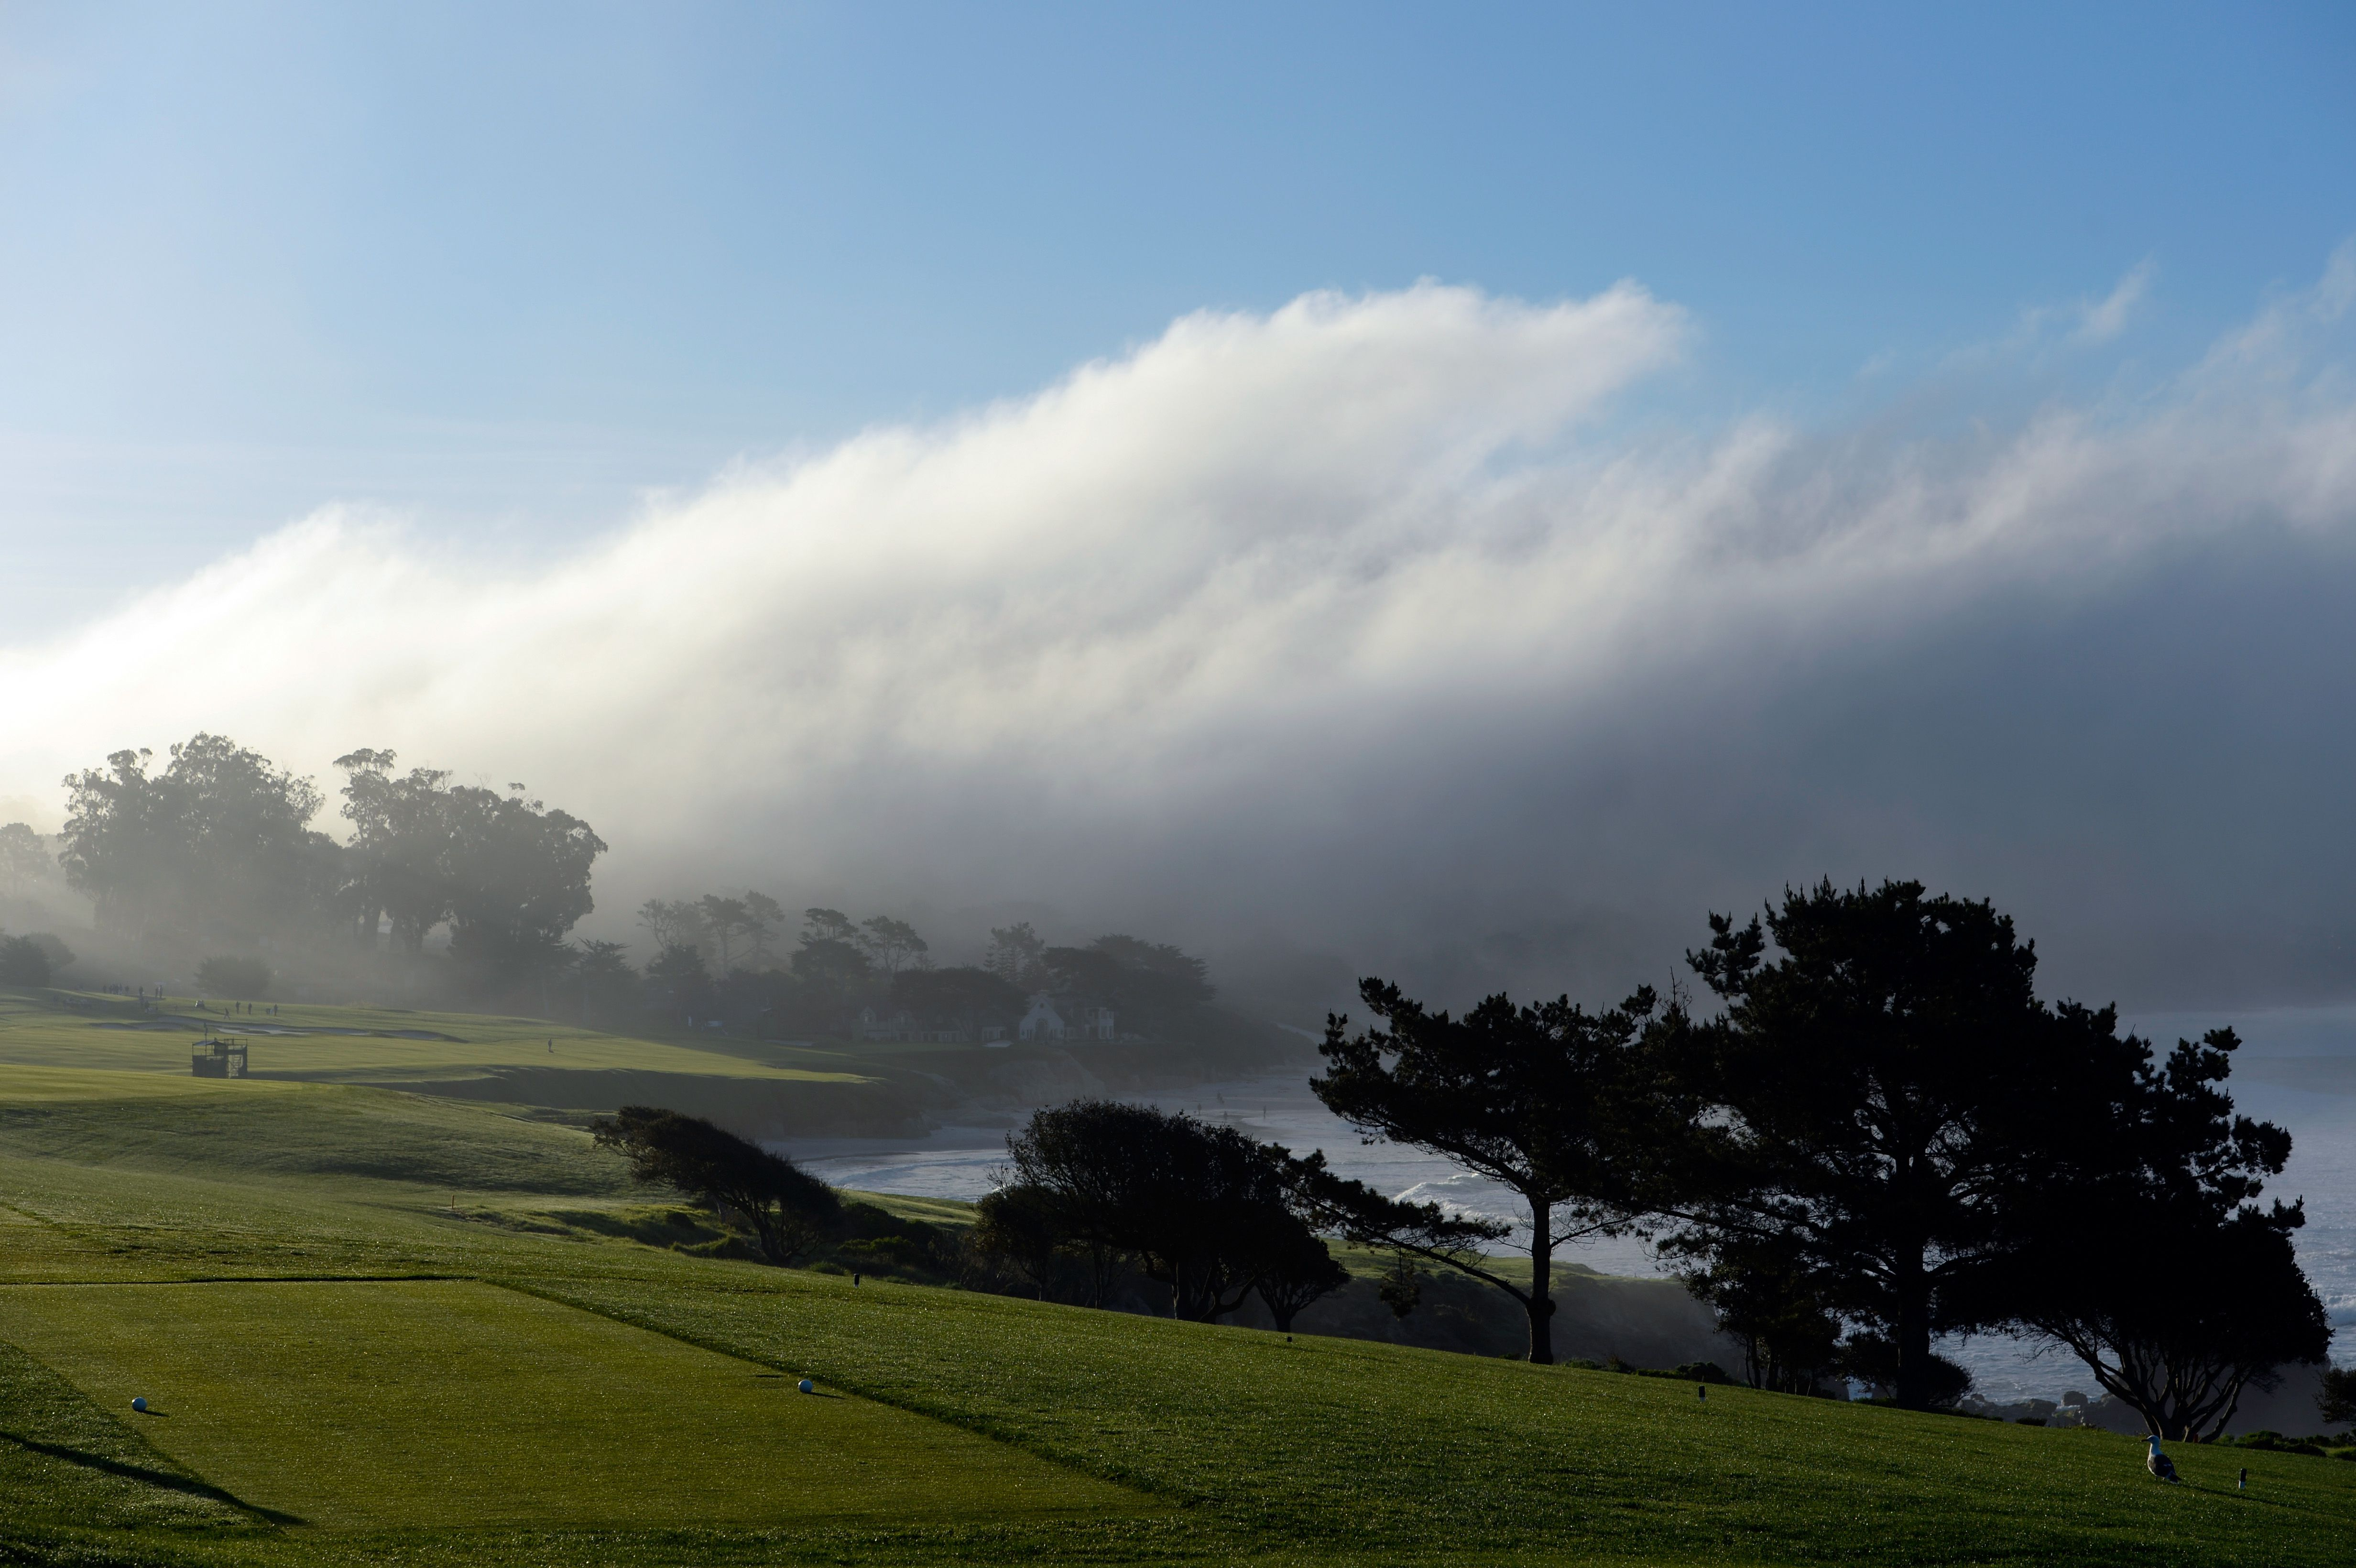 A general view of Hole No. 4 at Pebble Beach.